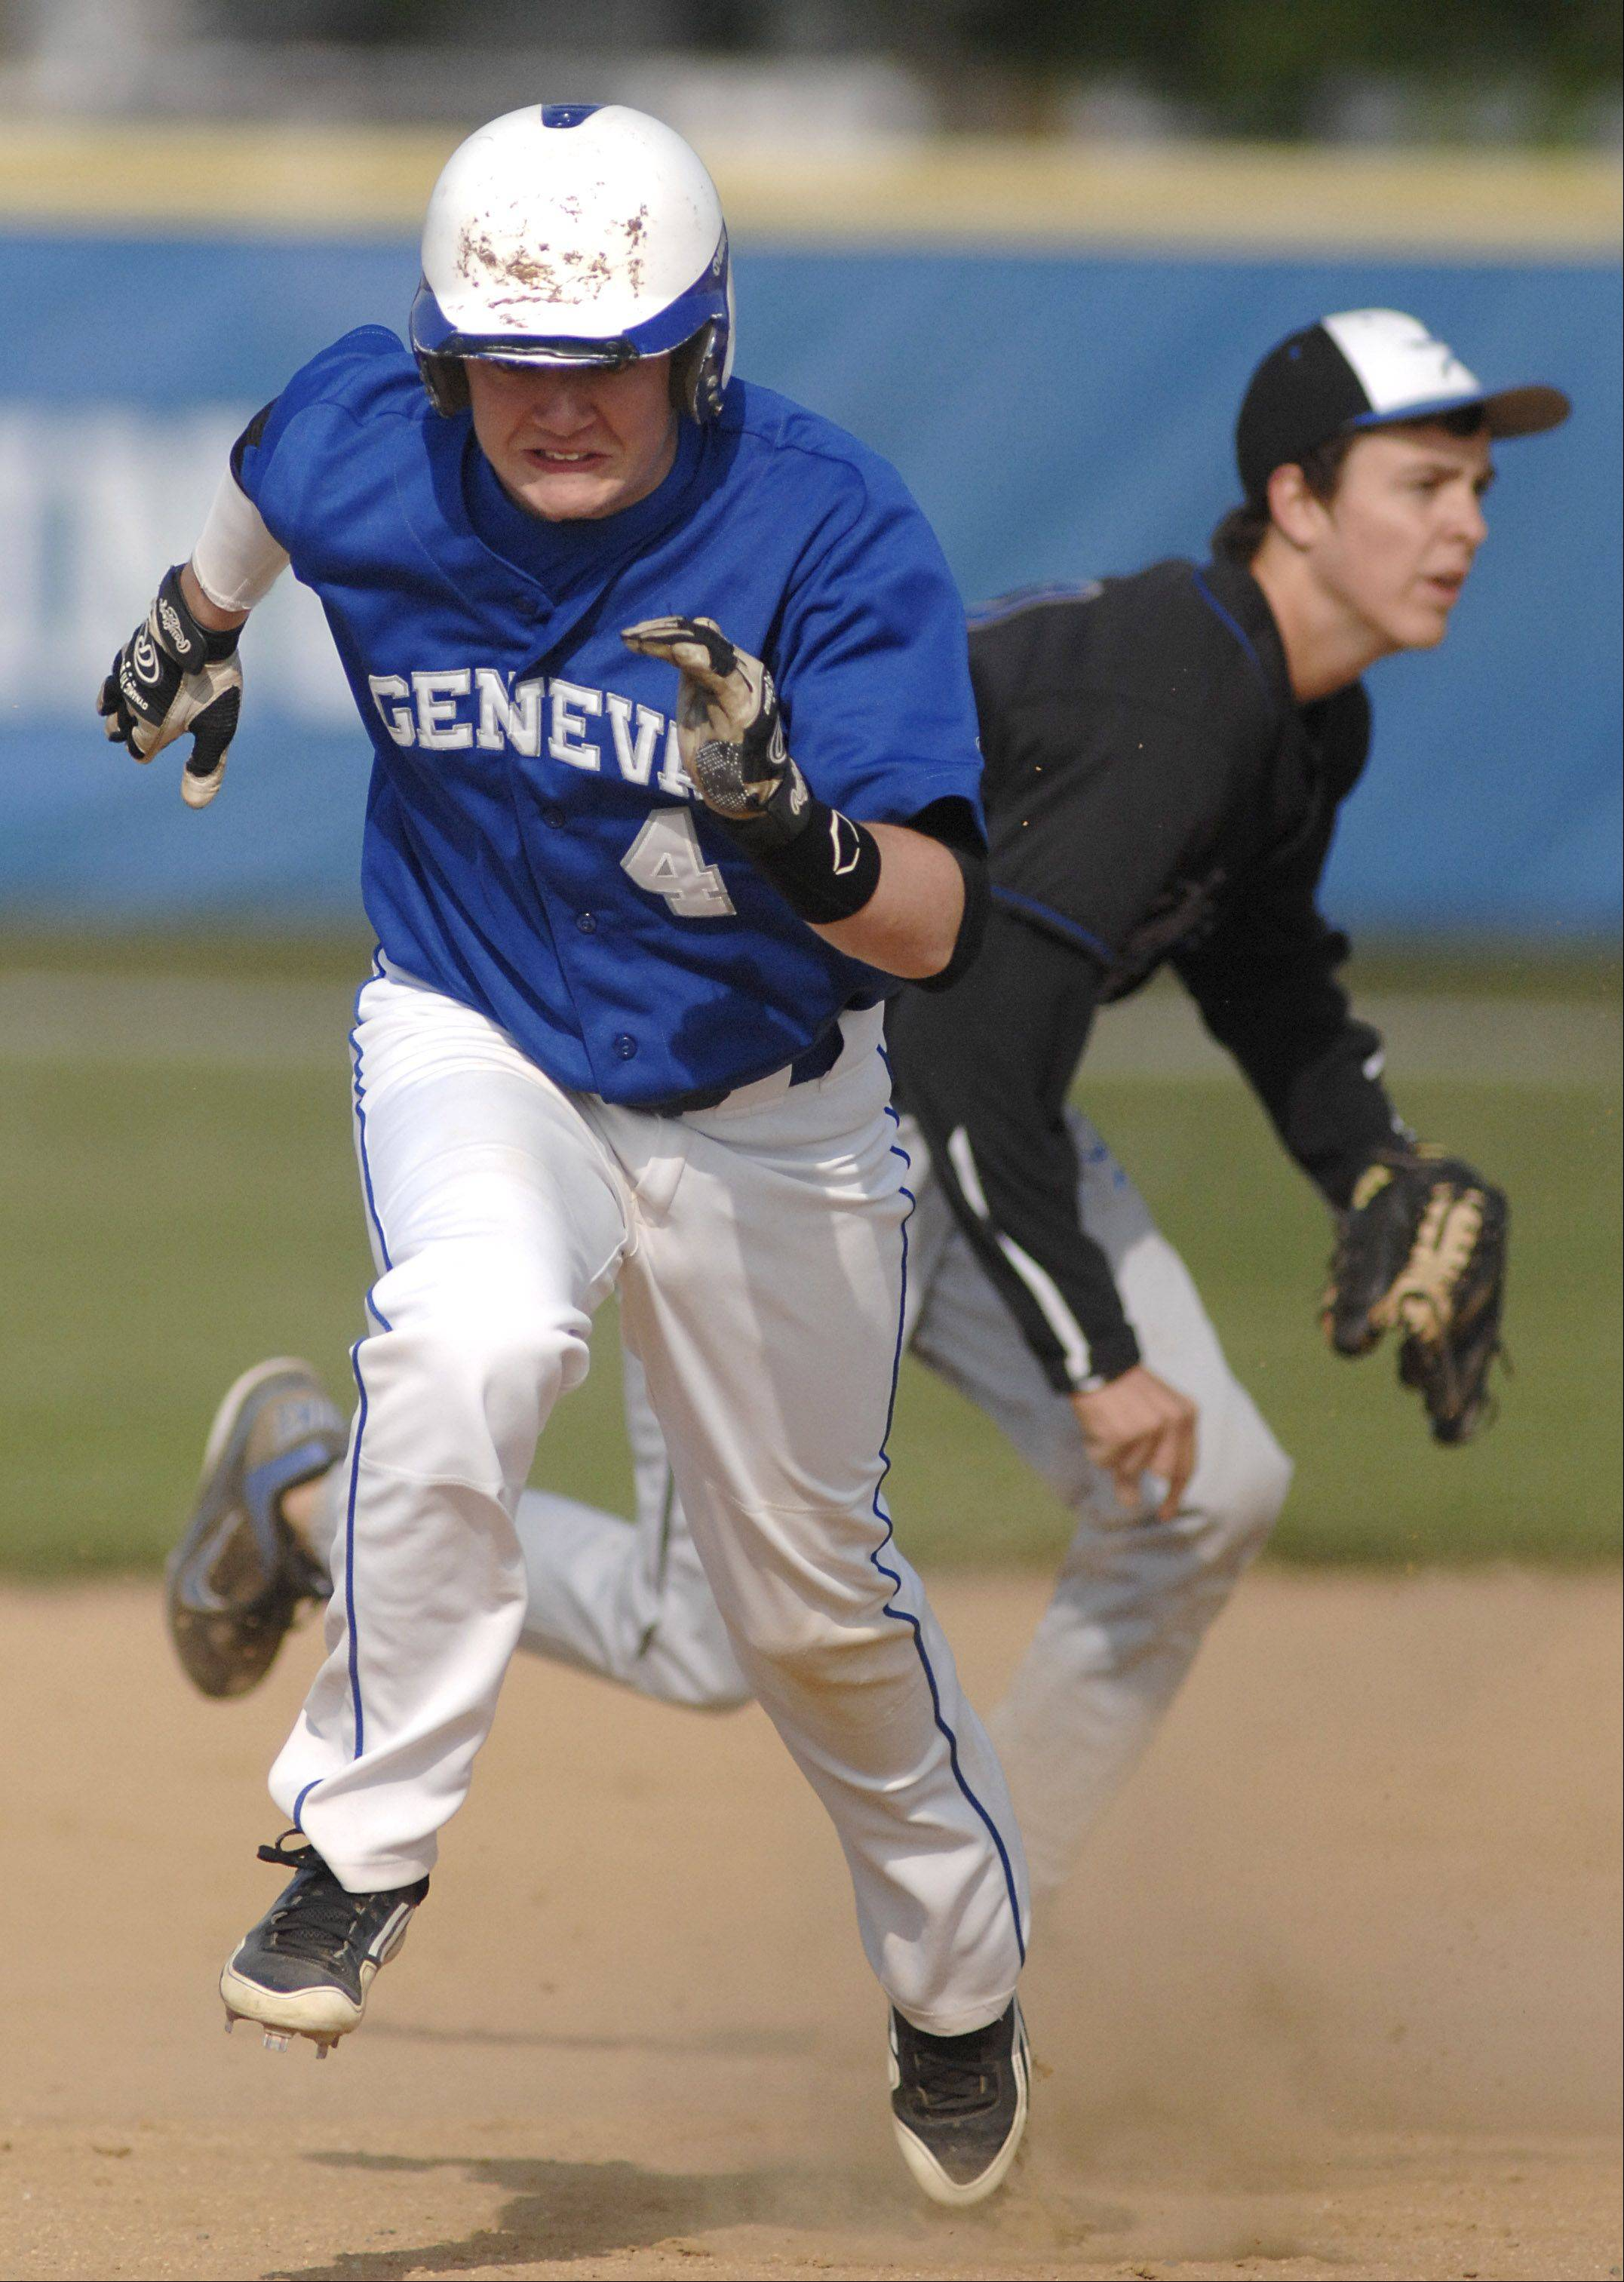 Geneva's Andy Francis takes off for third base in the first inning on Thursday, April 26.